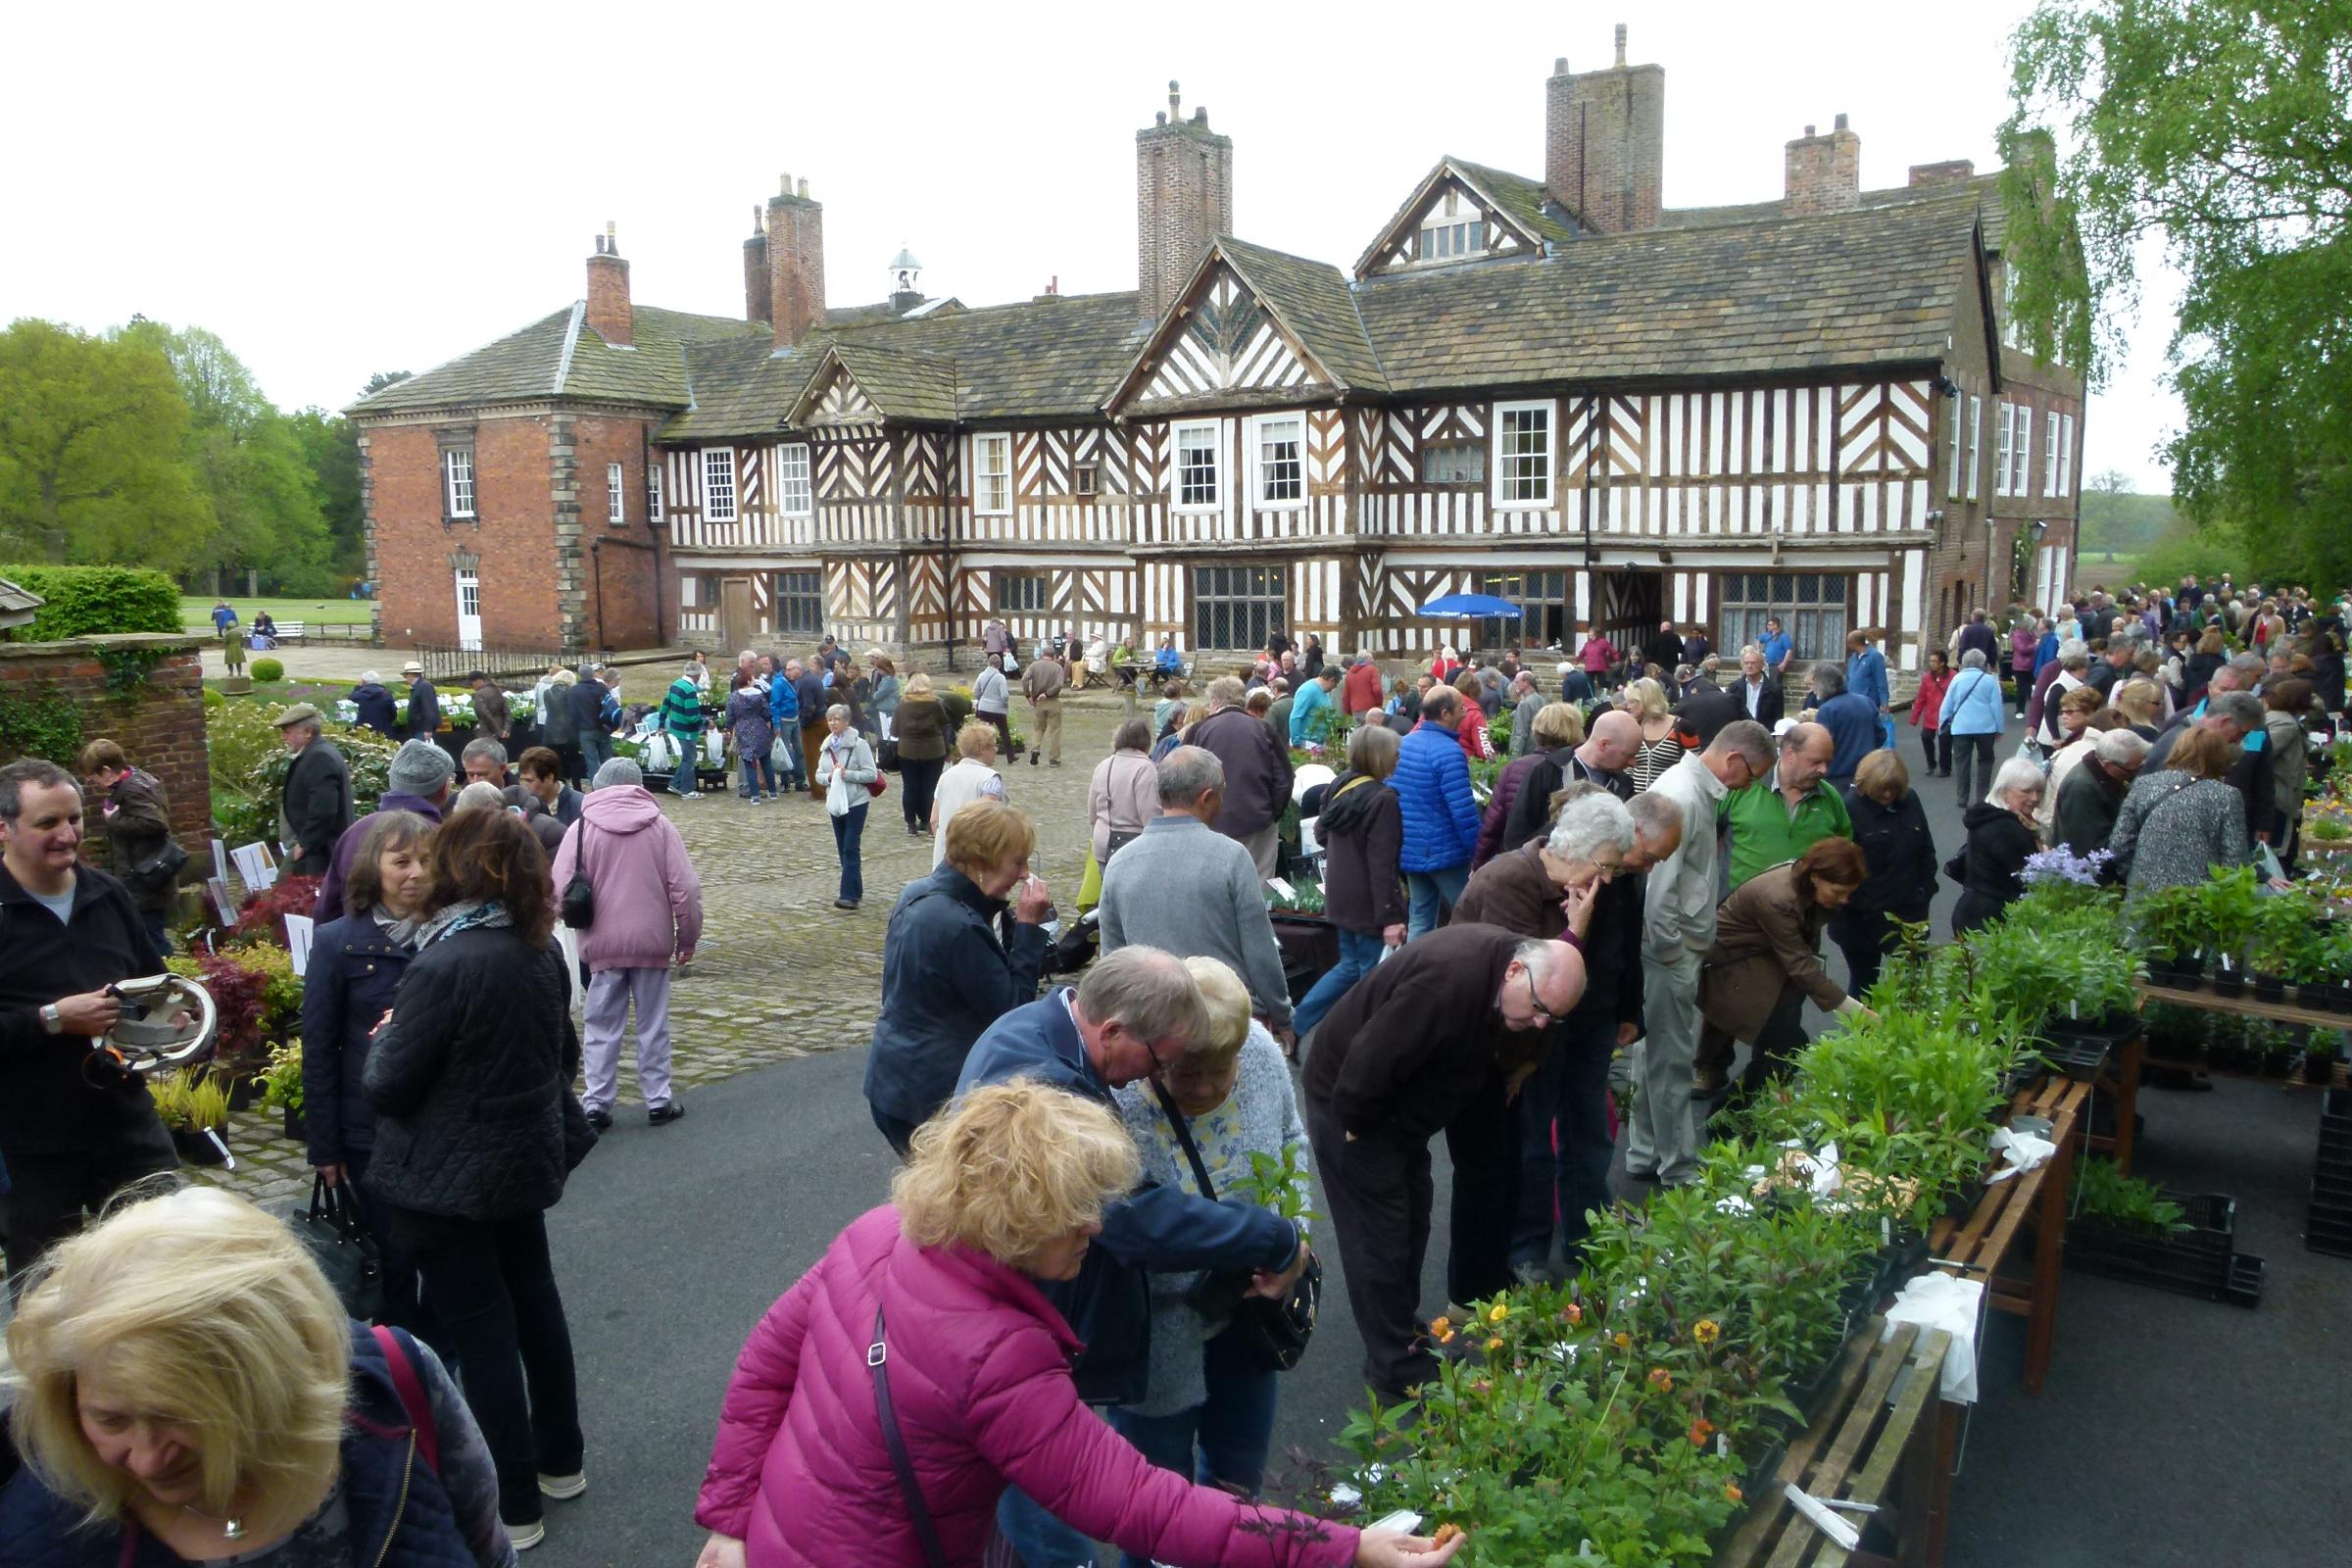 Plant Hunters' Fair at Adlington Hall, Macclesfield on Sunday 13th May